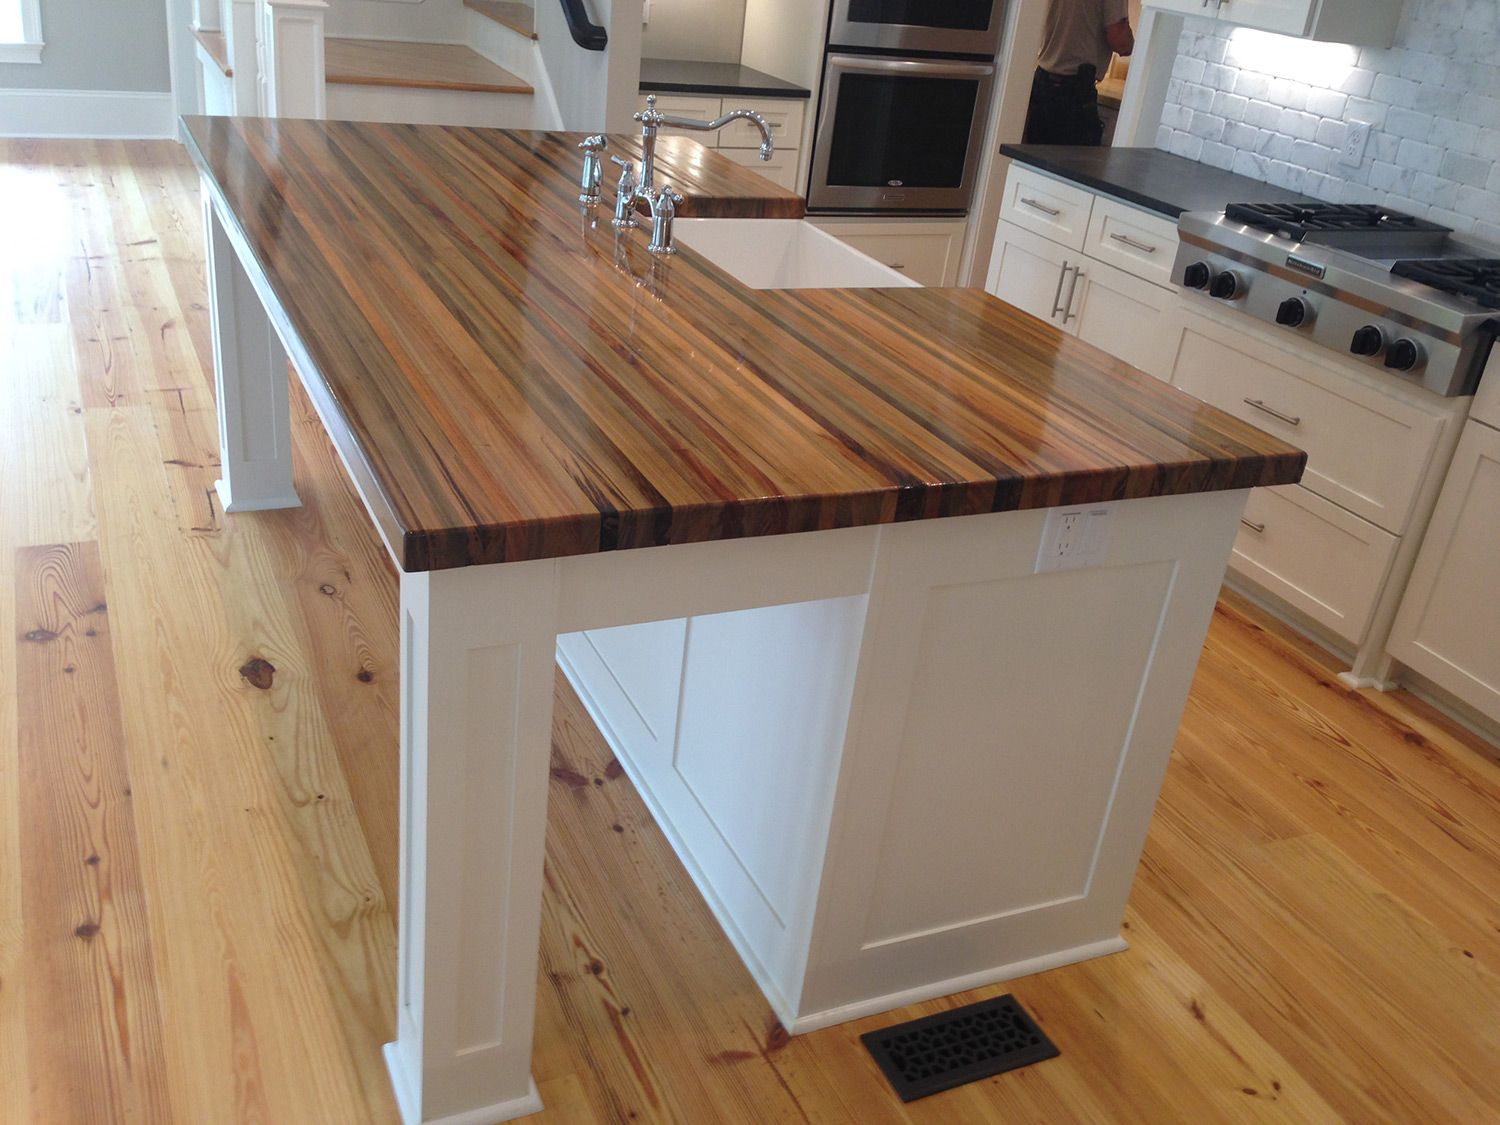 Blackwater Timber River Reclaimed Cypress Countertop Kitchen Redo Pantry Design